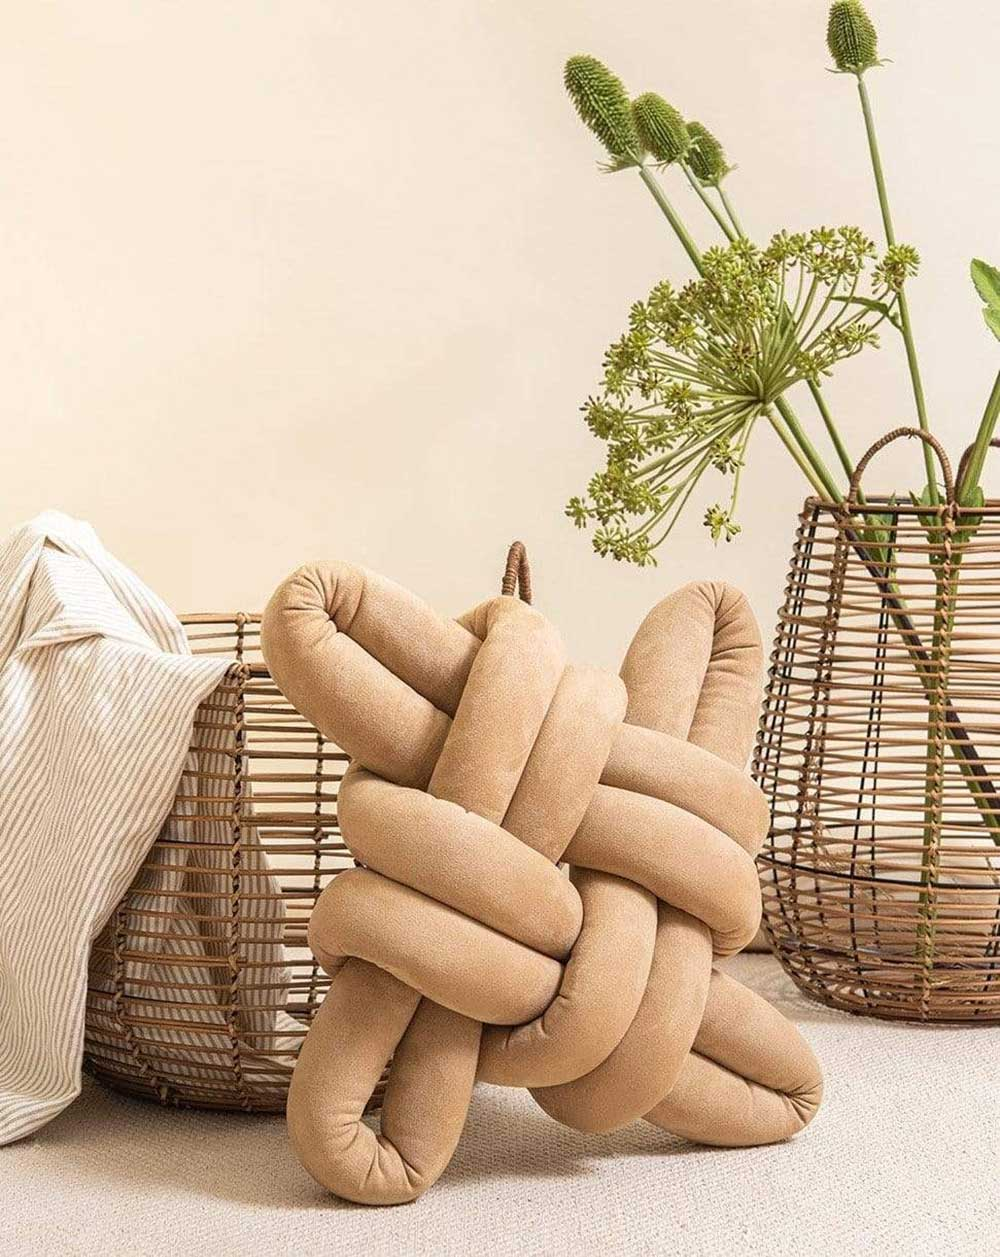 beige knot pillow resting in front of two baskets